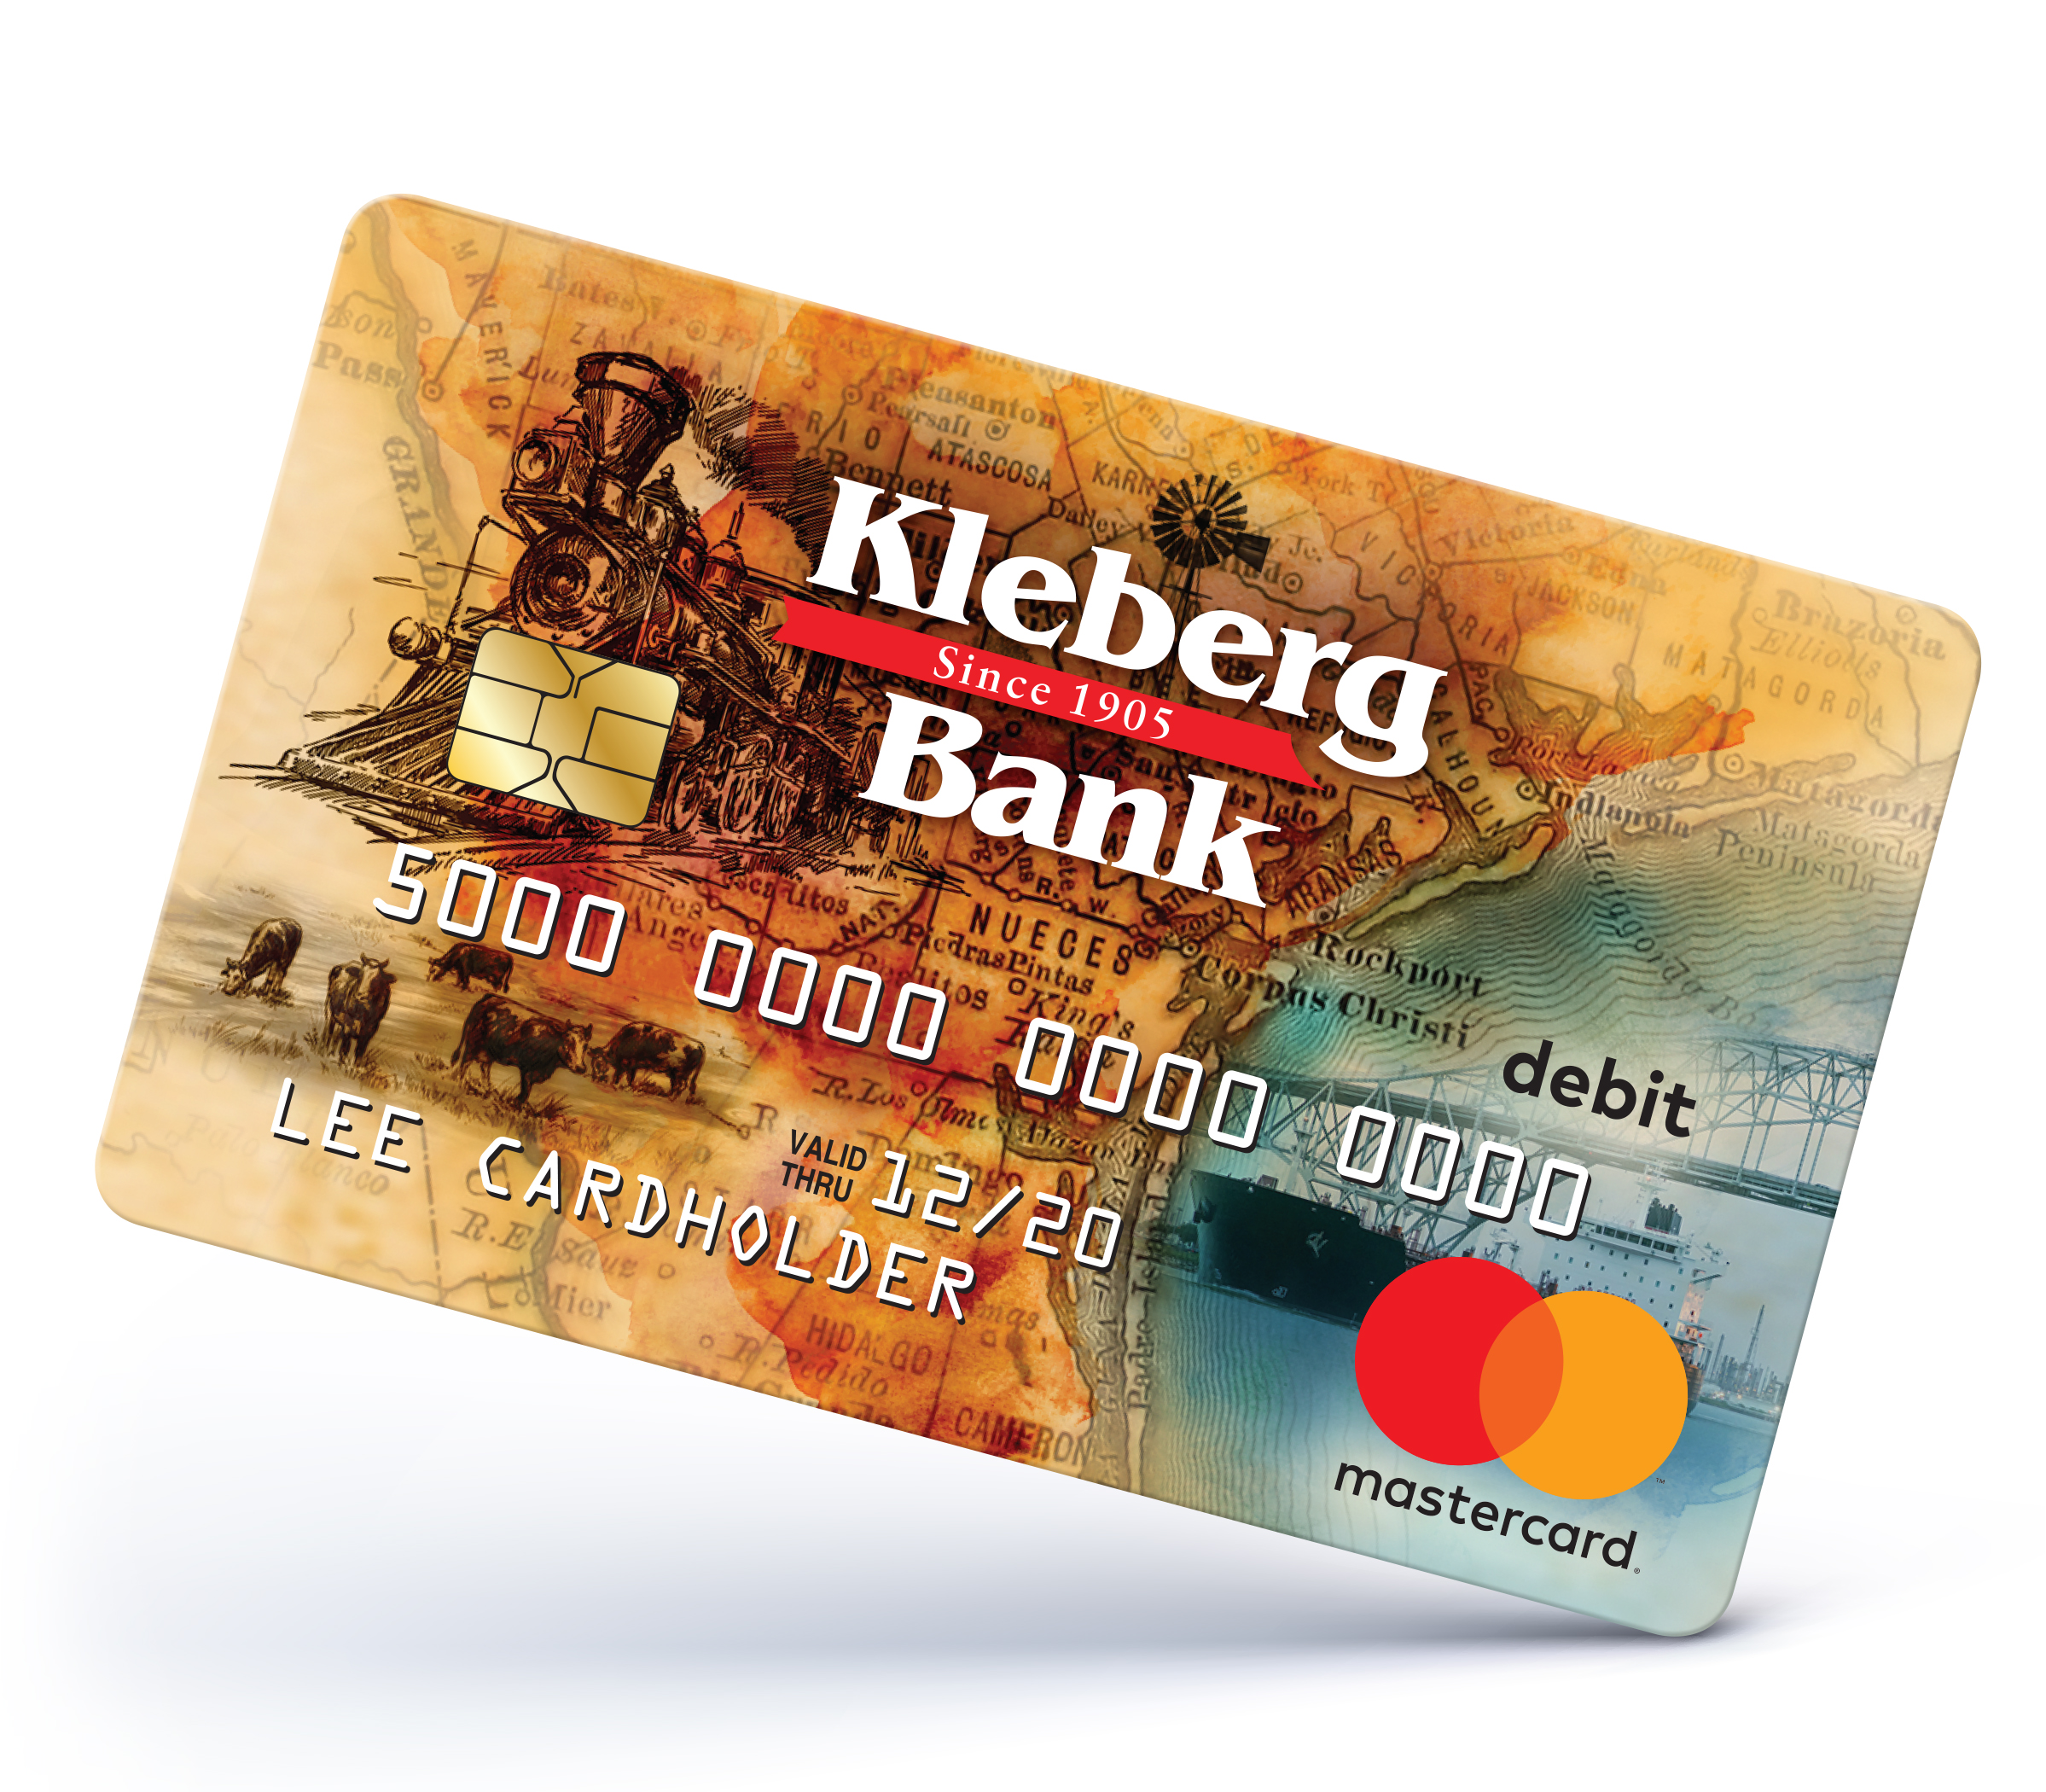 Debit Card Design for Kleberg Bank